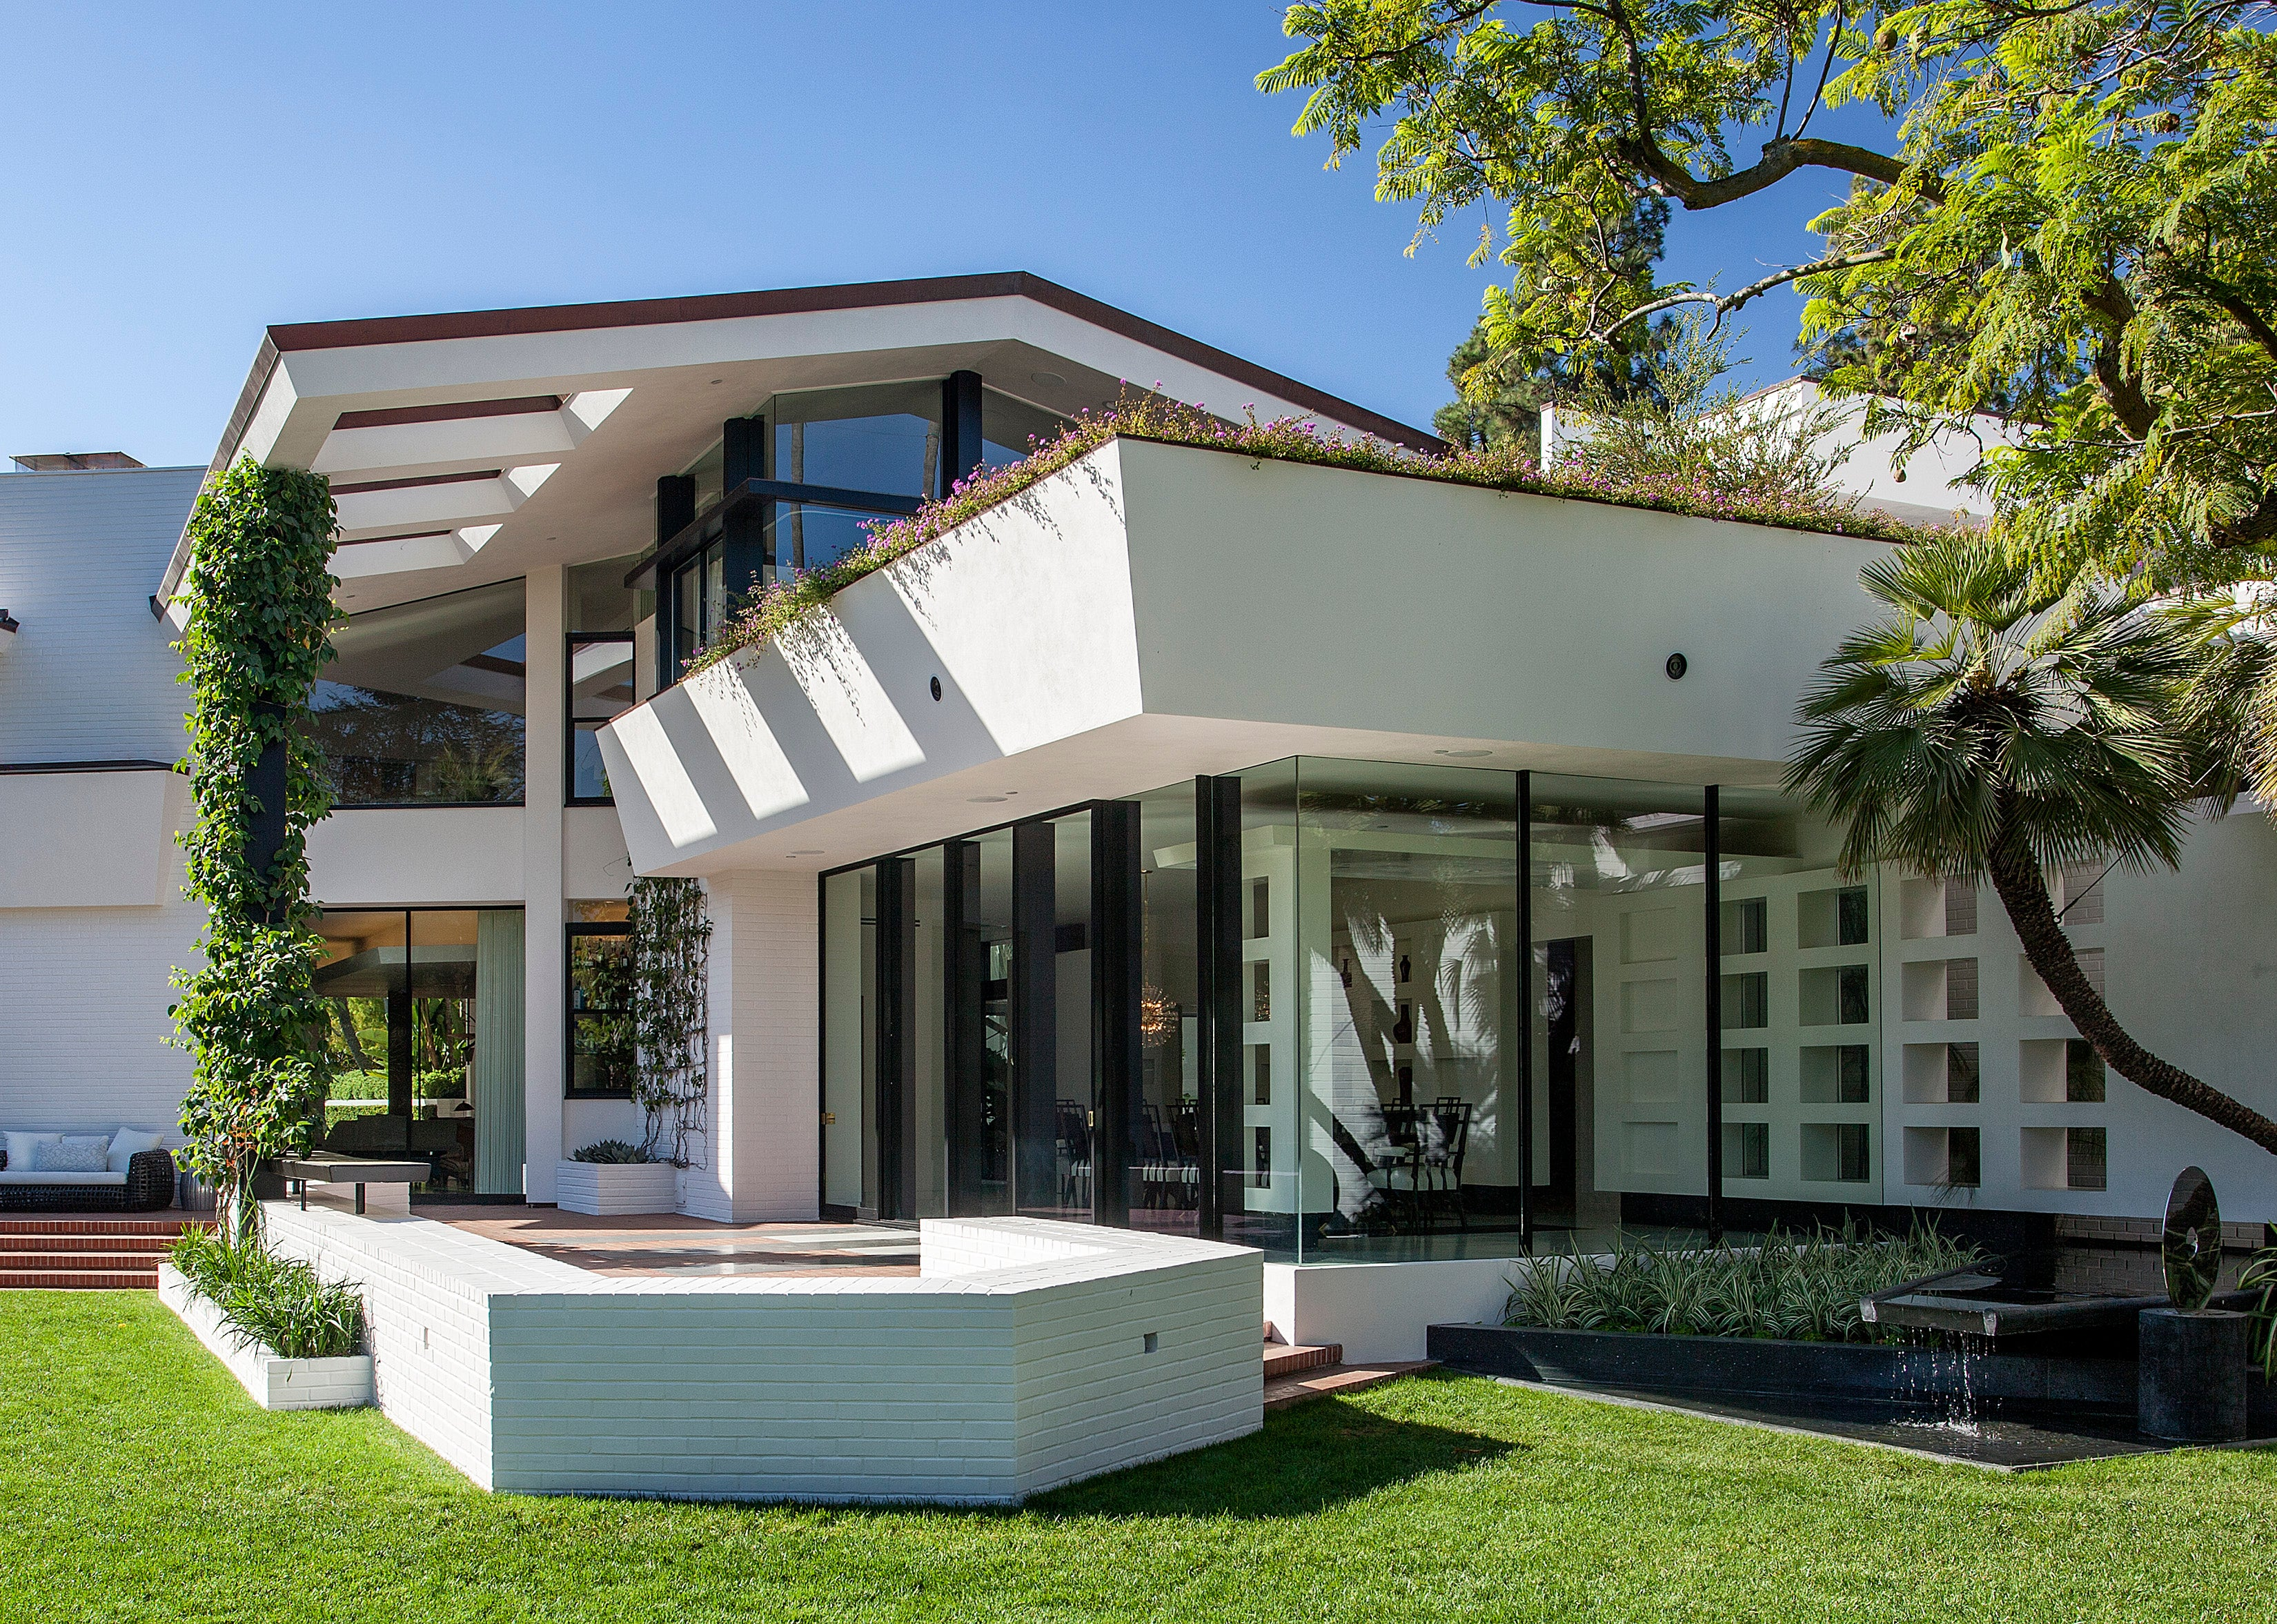 The Brody House By Stephen Stone Designs On 1stdibs